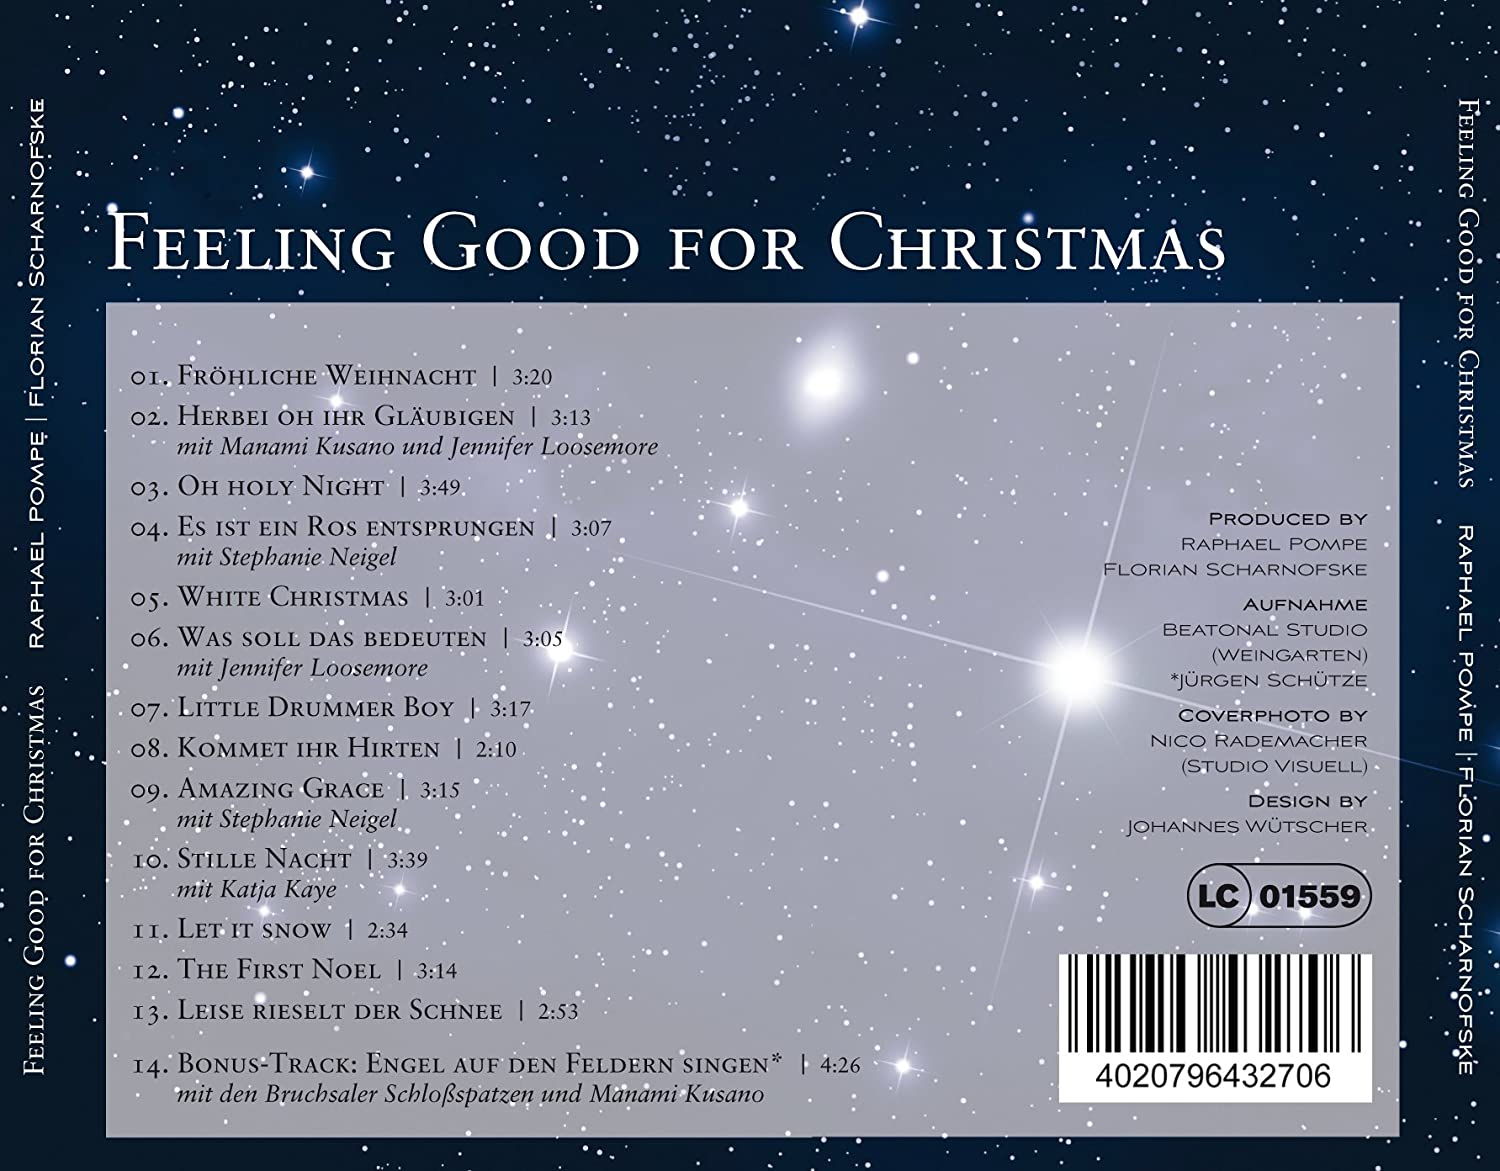 Feeling Good for Christmas - Die Weihnachts CD - Raphael Pompe ...